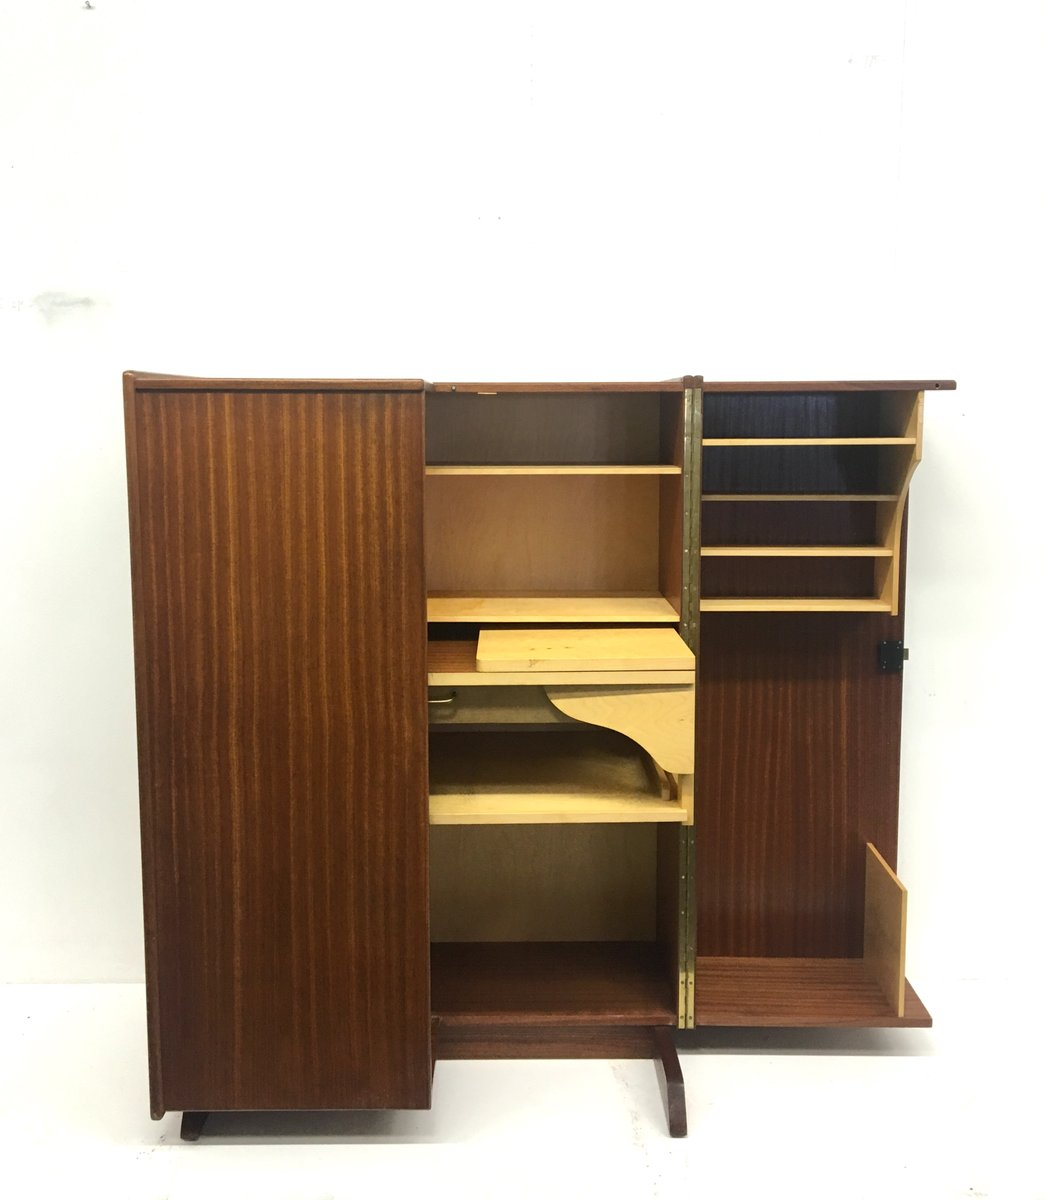 mid century schrank mit ausziehbarem schreibtisch von mummenthaler meier bei pamono kaufen. Black Bedroom Furniture Sets. Home Design Ideas